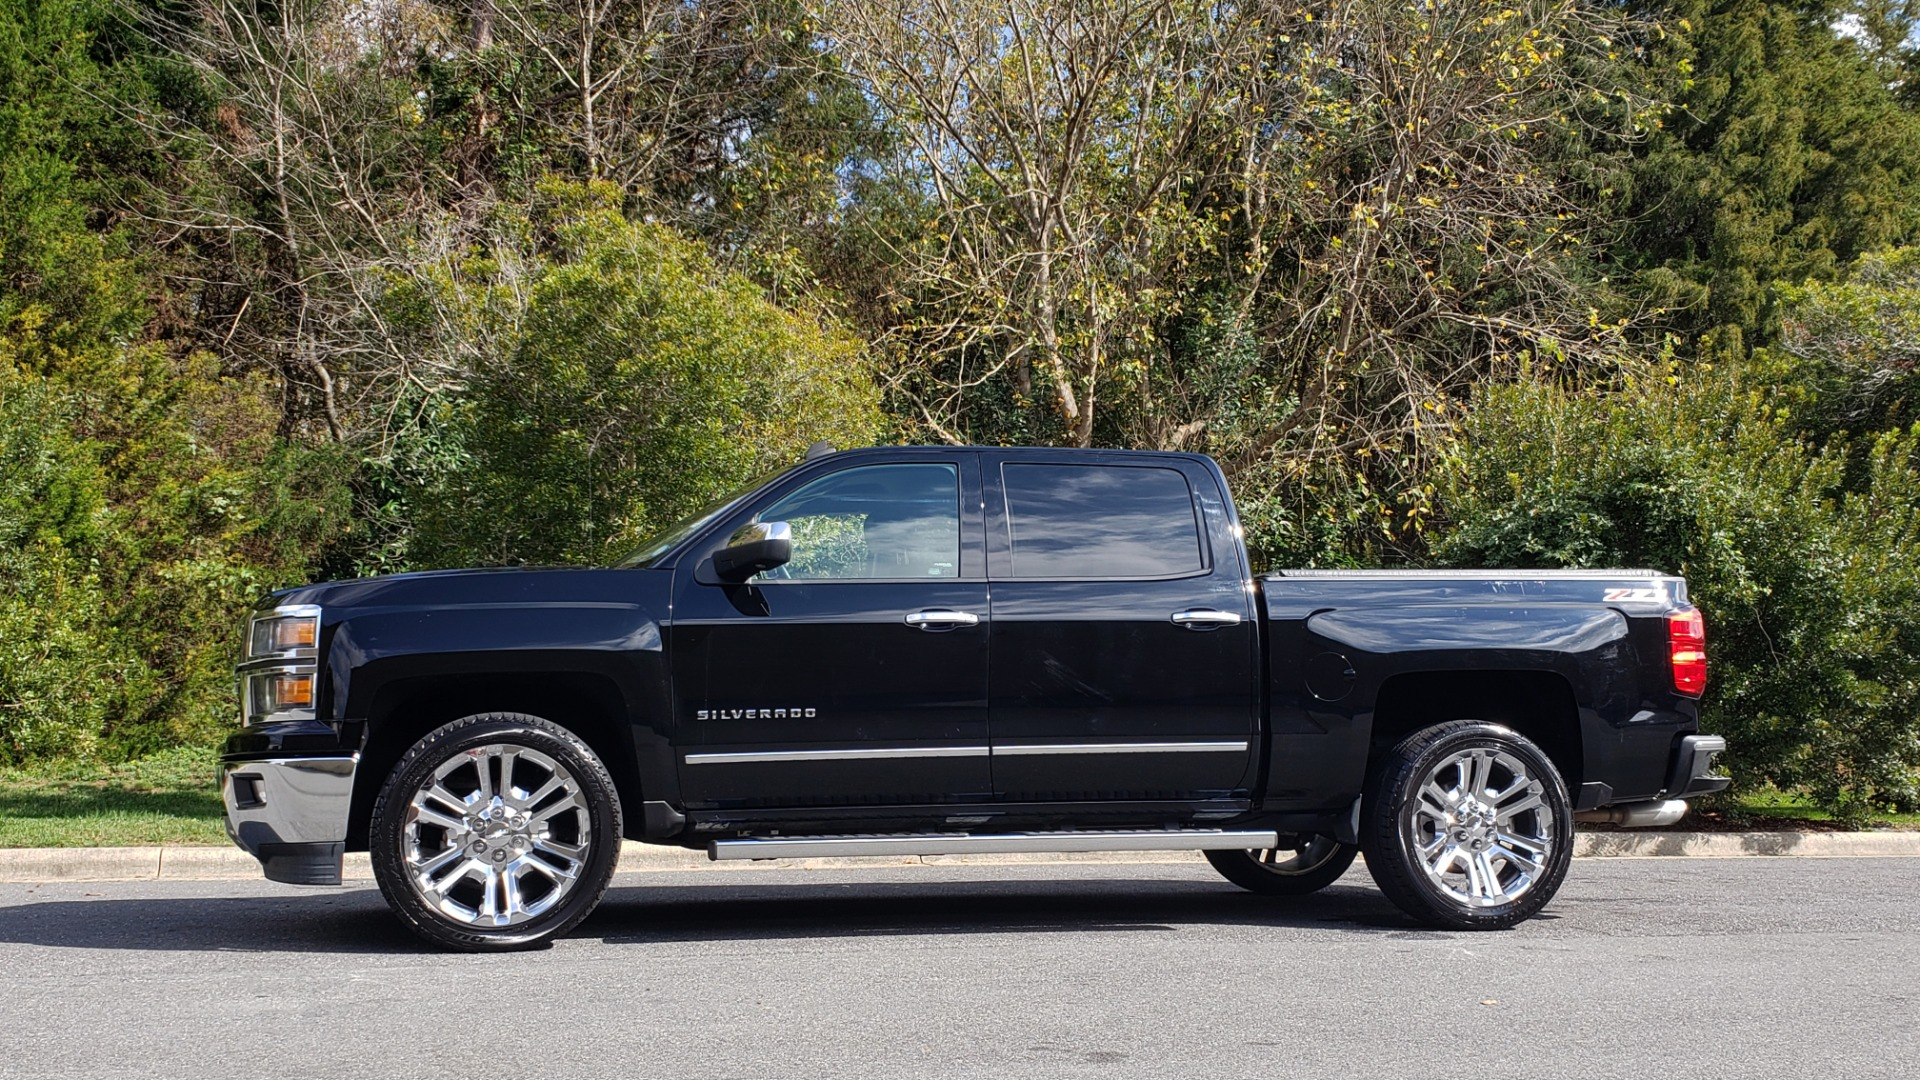 Used 2014 Chevrolet SILVERADO 1500 CREWCAB / LTZ PLUS PKG / 4WD / 2LZ / NAV / BOSE / REARVIEW for sale Sold at Formula Imports in Charlotte NC 28227 2